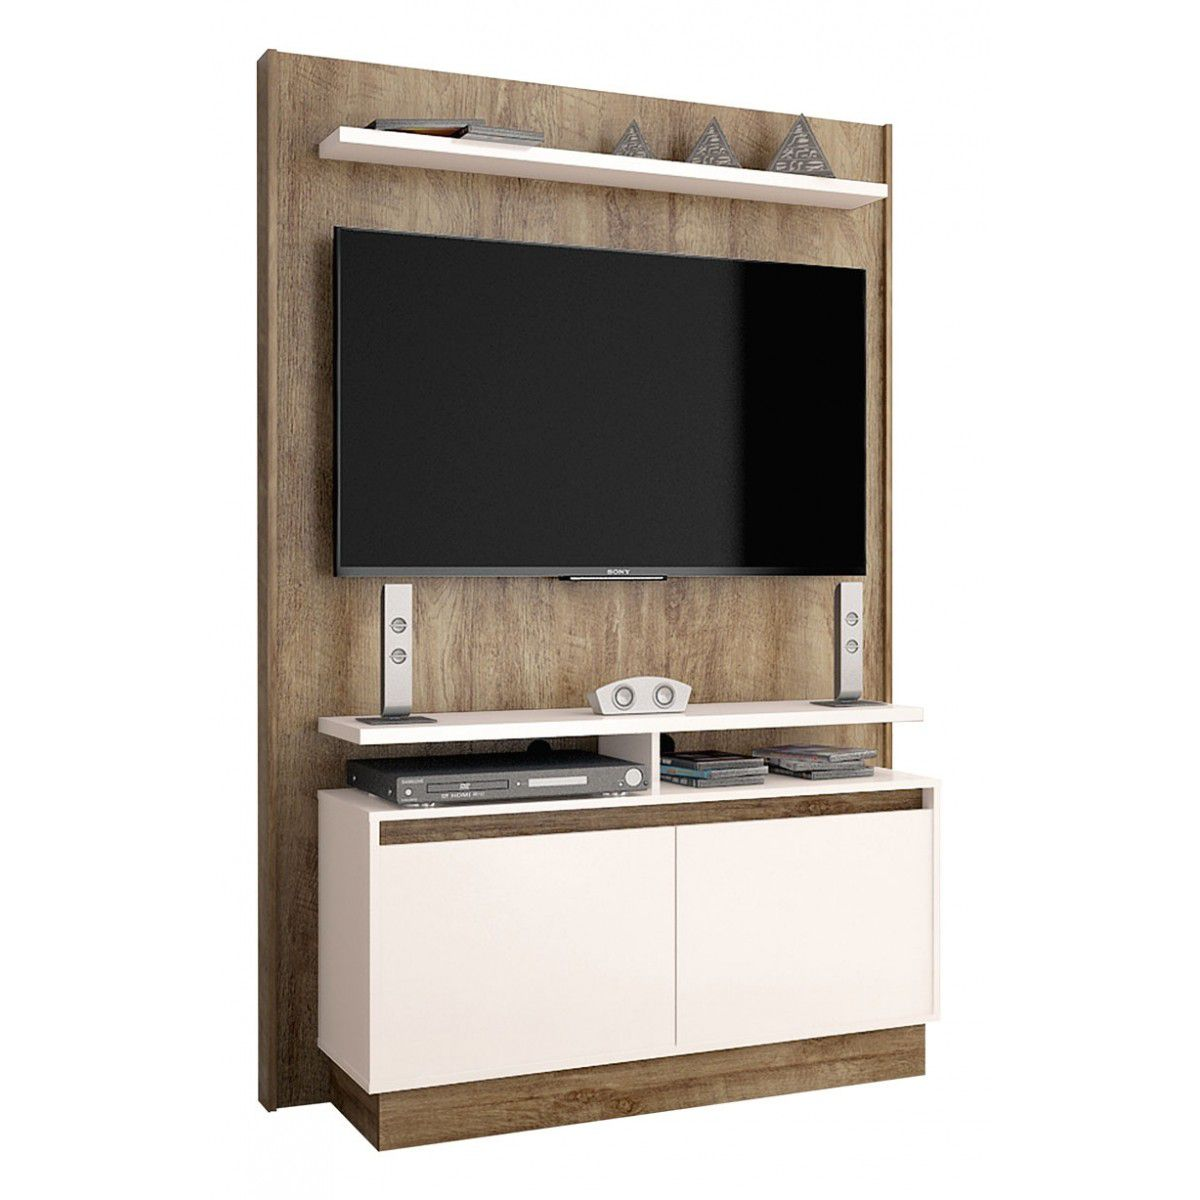 Home Theater Fit Madeira com Off White - Imcal